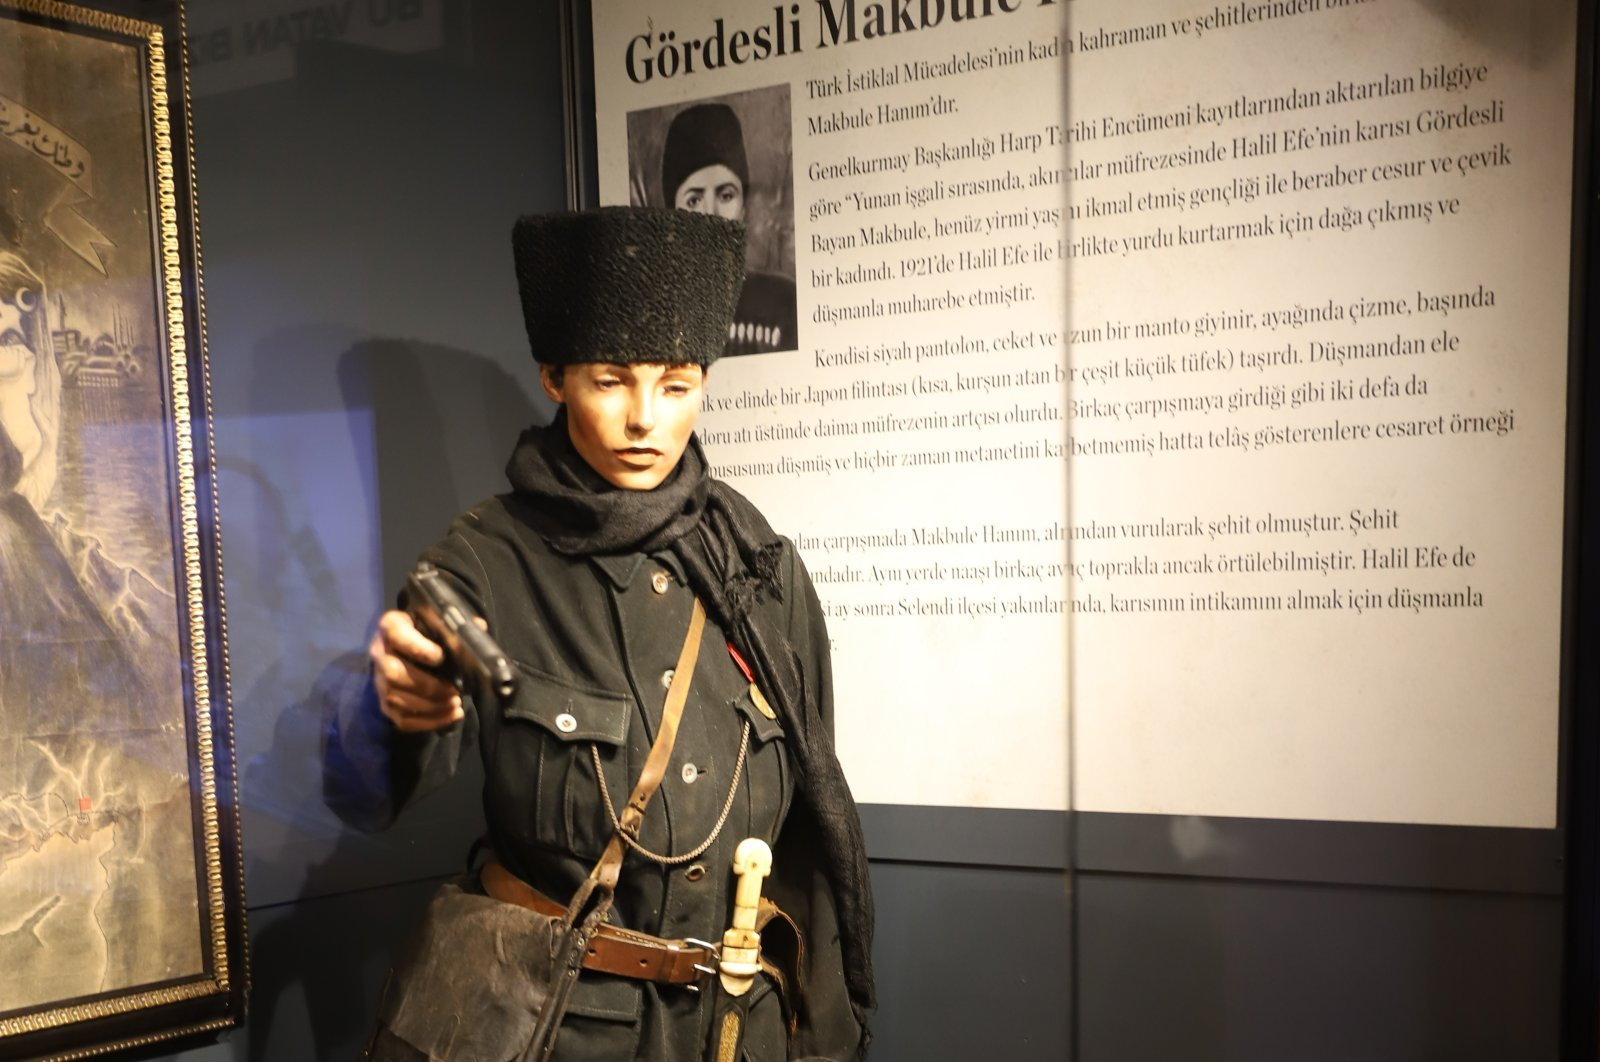 A model of a Turkish heroine on display at the exhibition in the Istanbul Cinema Museum. (Photo by Meltem Sarsılmaz)